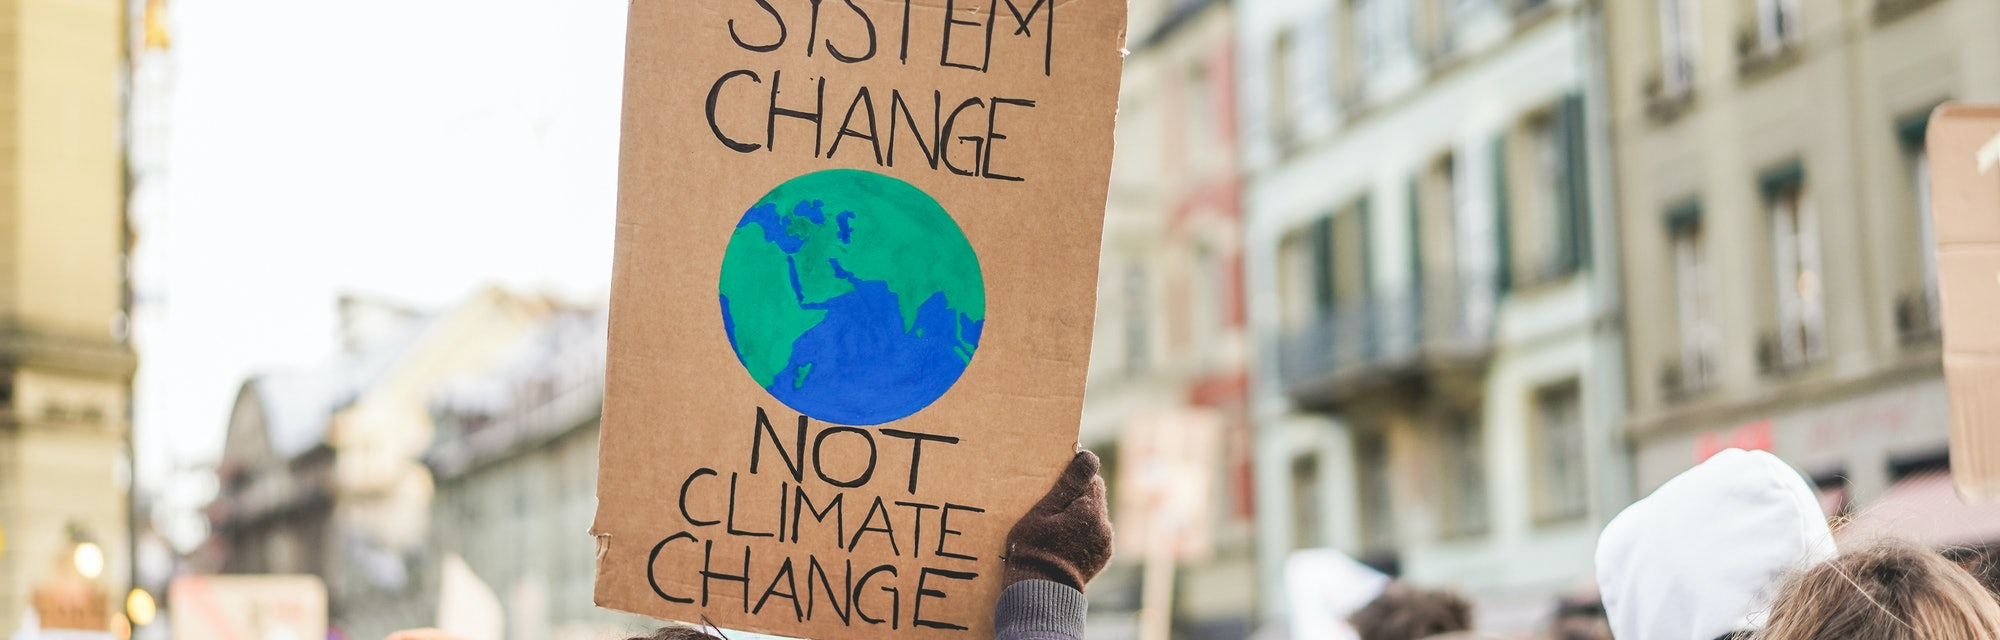 Group of demonstrators fight for climate change - Global warming and enviroment concept - Focus on banner